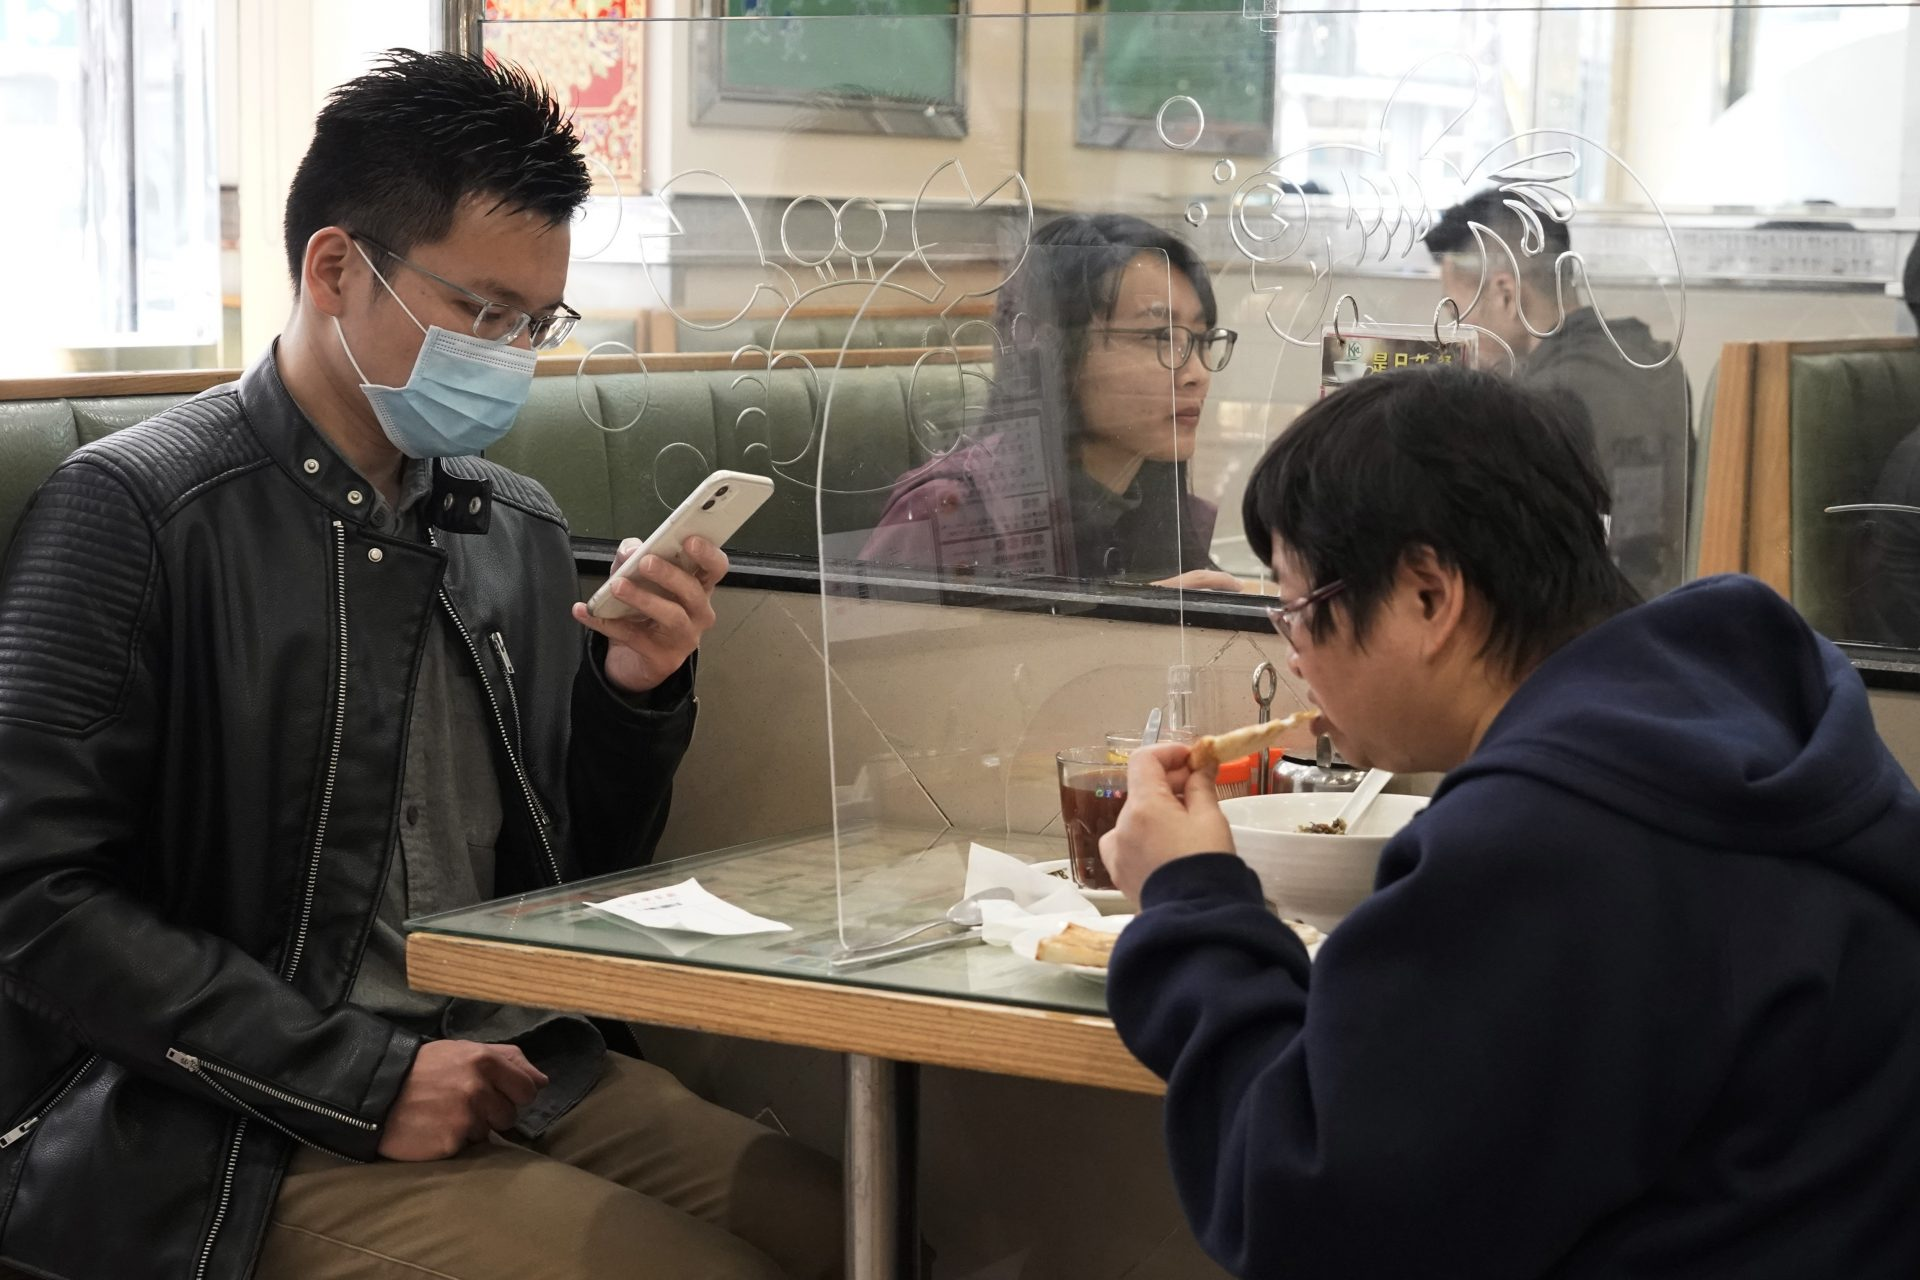 Customers have lunch with a transparent plastic panel setup on the table to isolate each other to prevent spreading of the coronavirus in Hong Kong, Wednesday, Feb. 12, 2020. China's ruling Communist Party needs to make a politically fraught decision: Admit a viral outbreak isn't under control and cancel this year's highest-profile official event. Or bring 3,000 legislators to Beijing next month and risk fueling public anger at the government's handling of the disease.